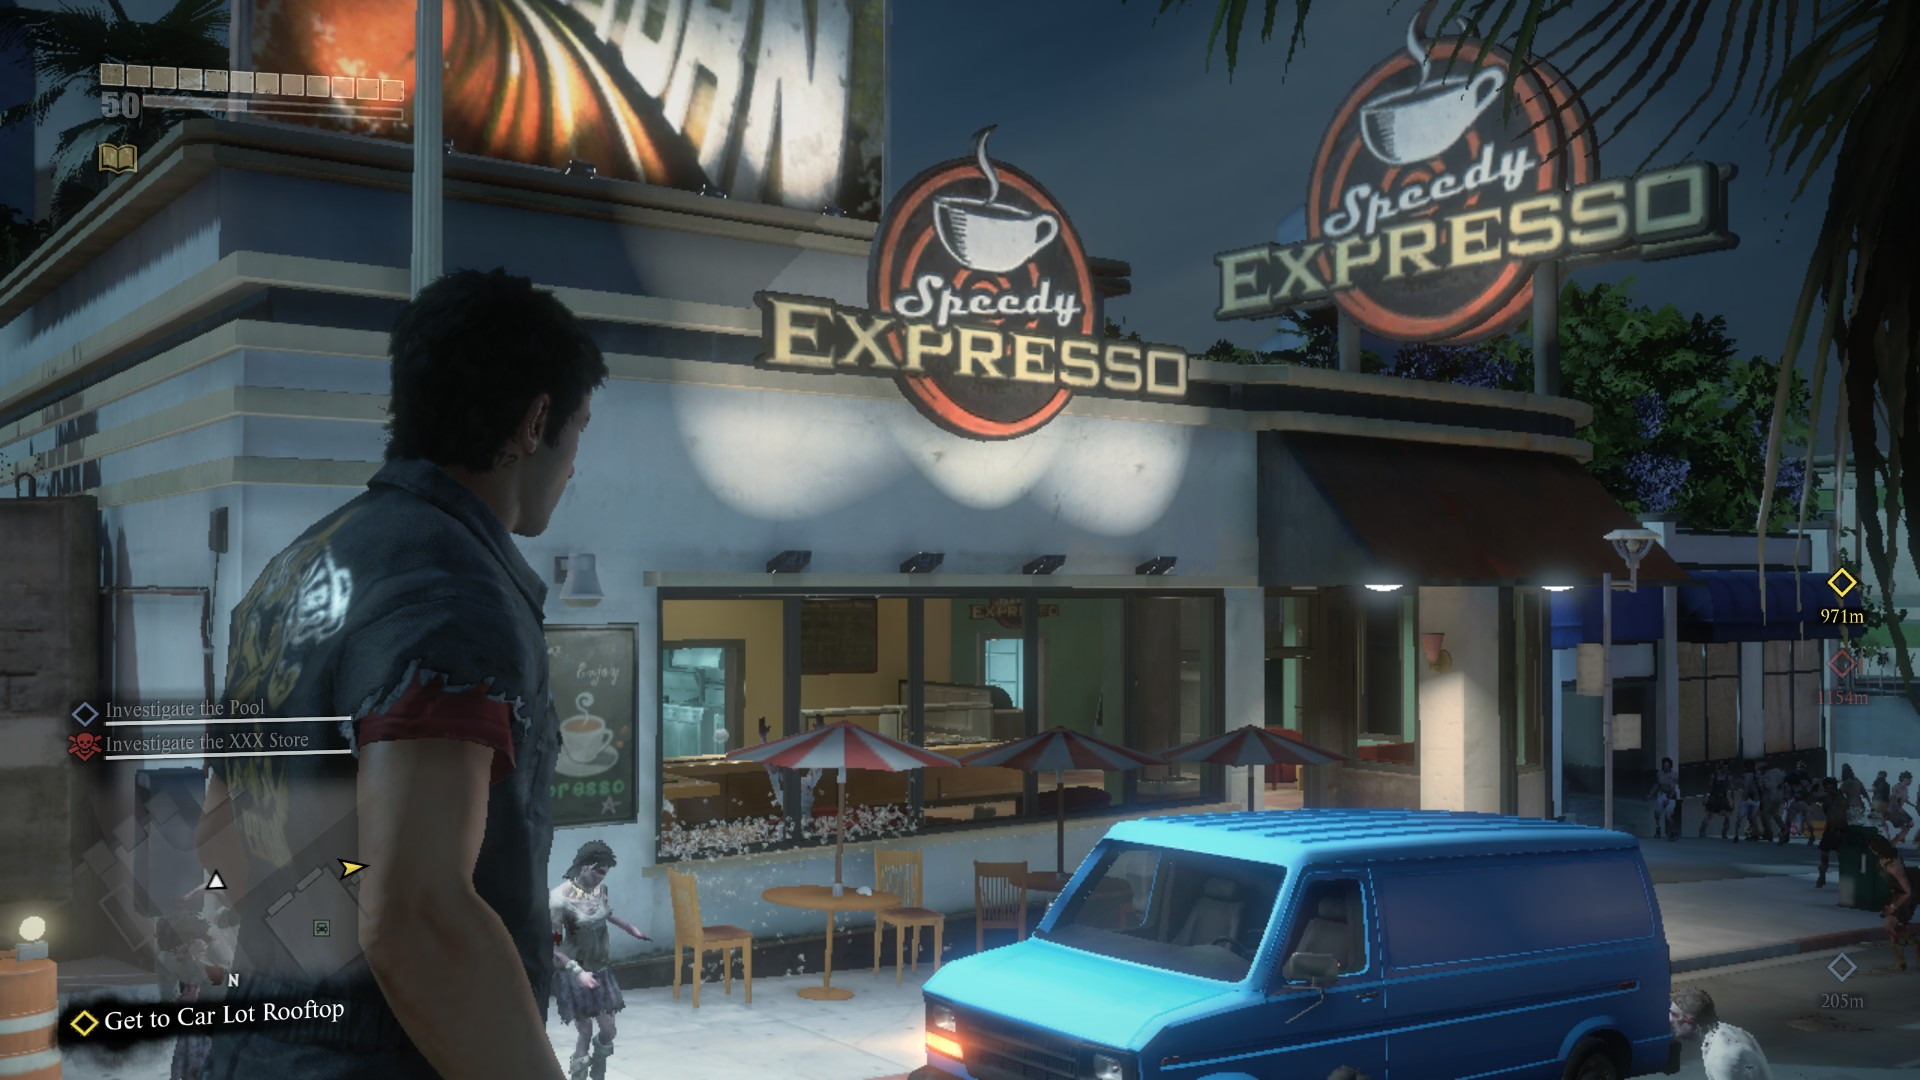 Speedy expresso dead rising 3 dead rising wiki fandom powered speedy expresso dead rising 3 malvernweather Image collections